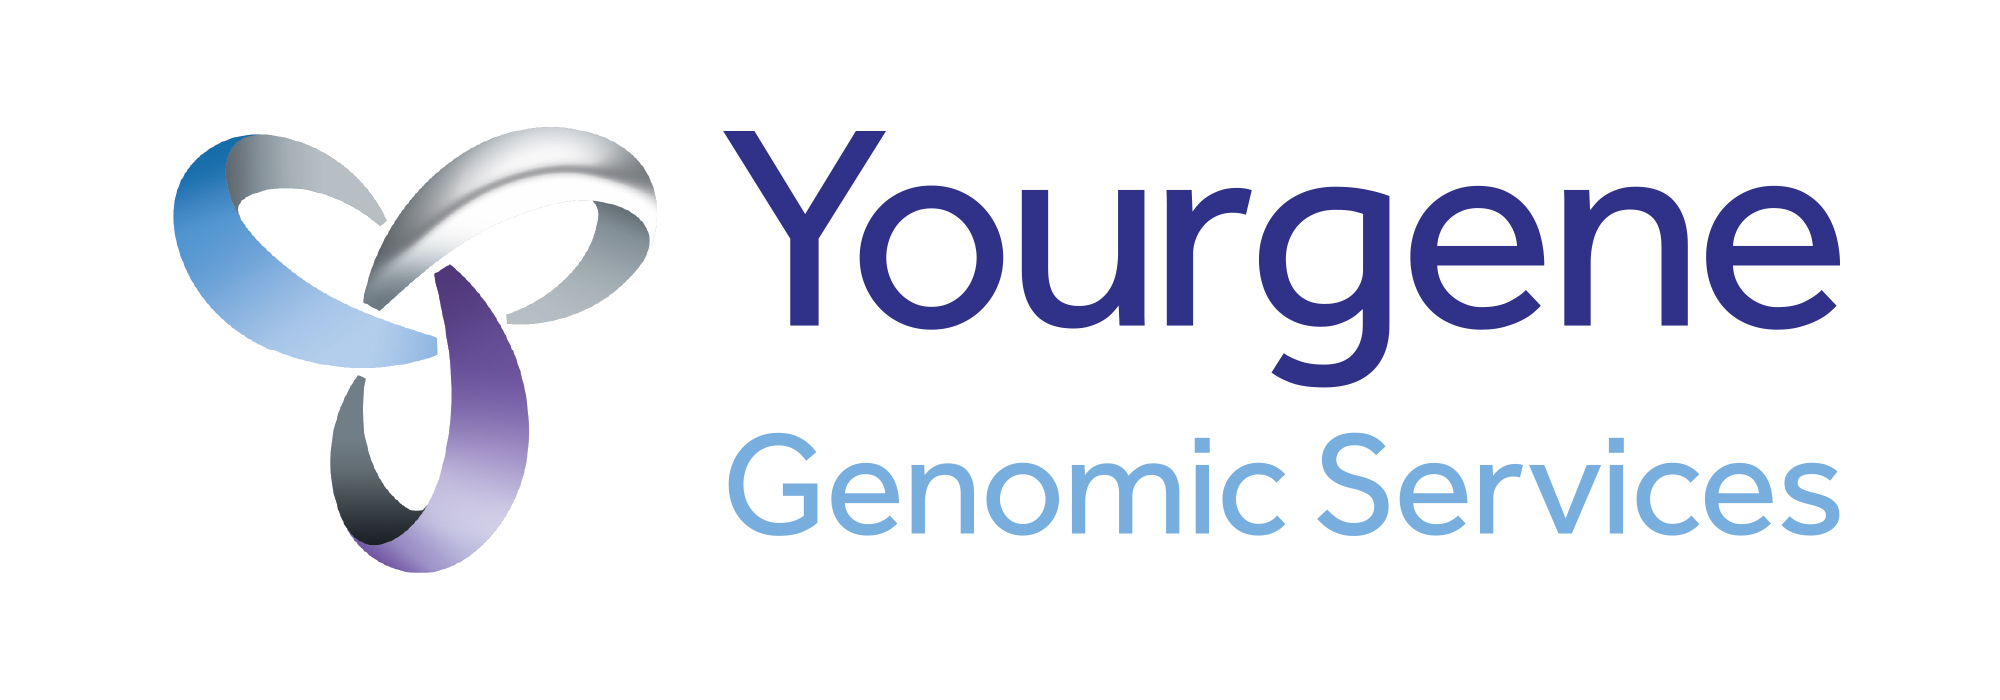 yourgene genomic services logo 1